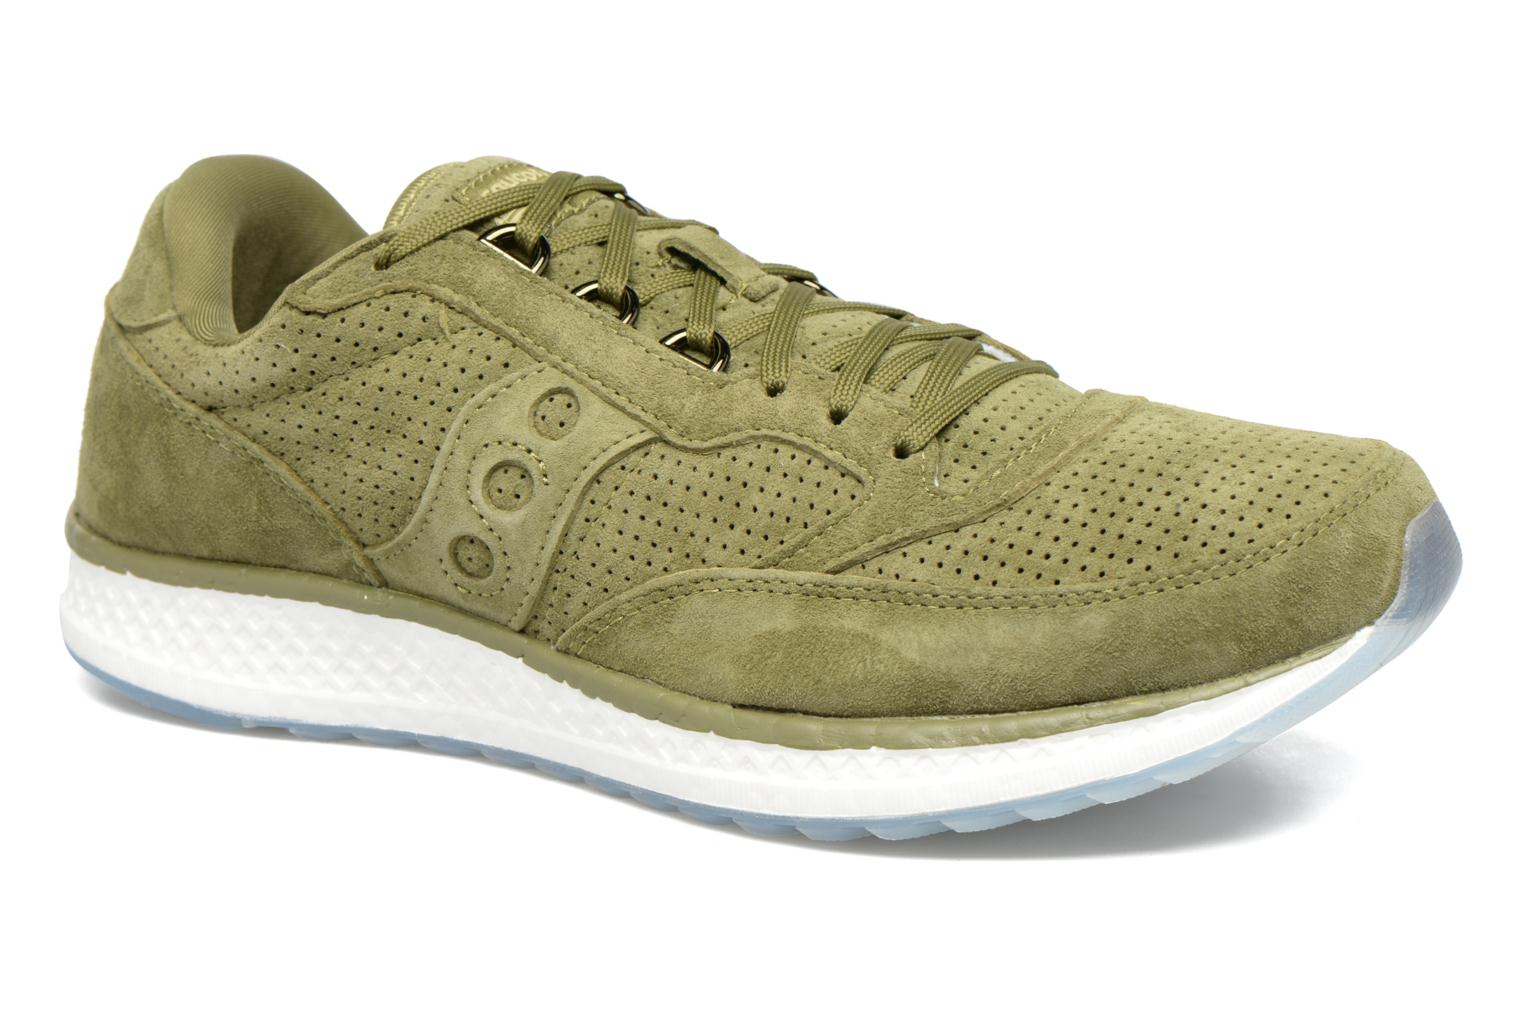 Freedom Runner by SauconyRebajas - 20%